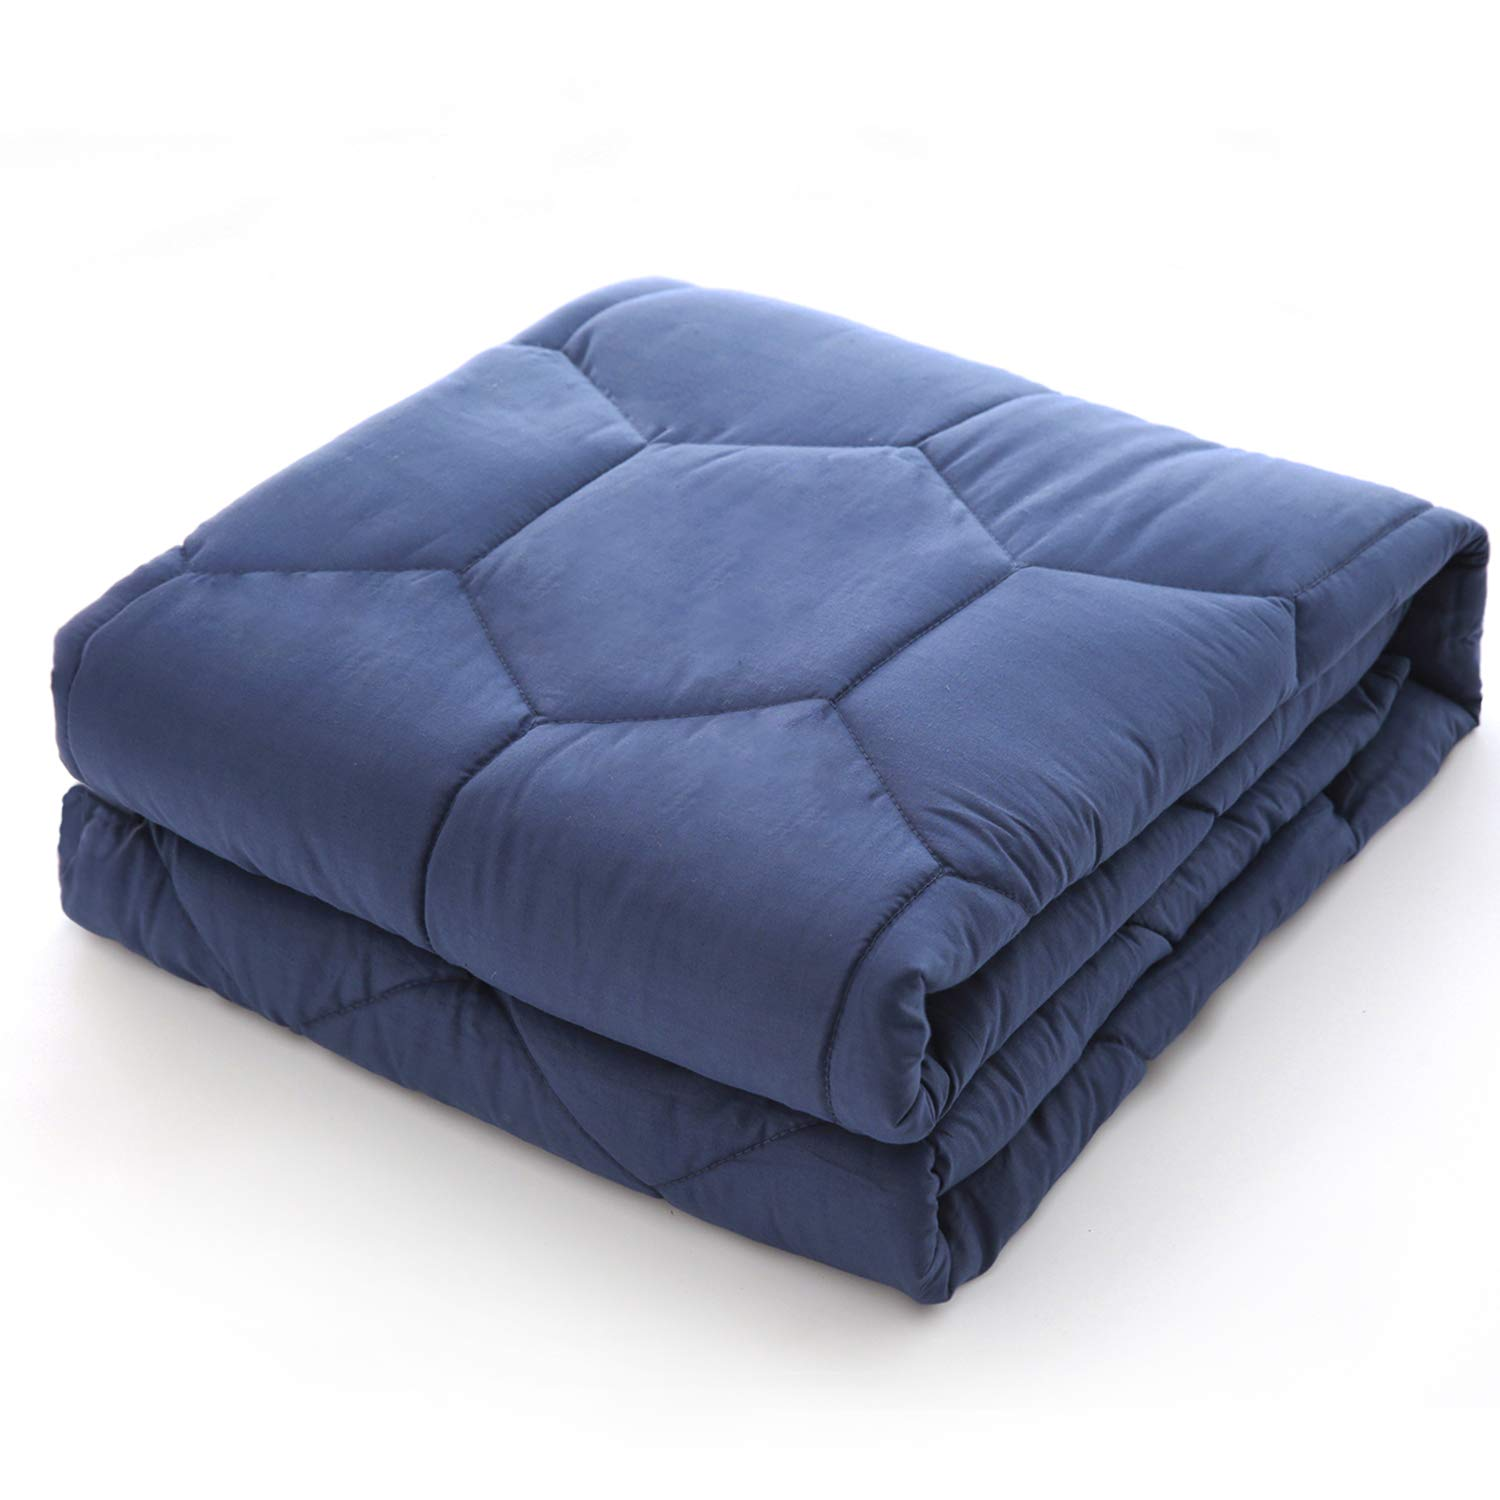 YEMYHOM 100/% Cotton Weighted Blankets Adult 15 lbs 48x72 Bed Couch Heavy Blankets Twin//Full Size Blue Myhom Textile